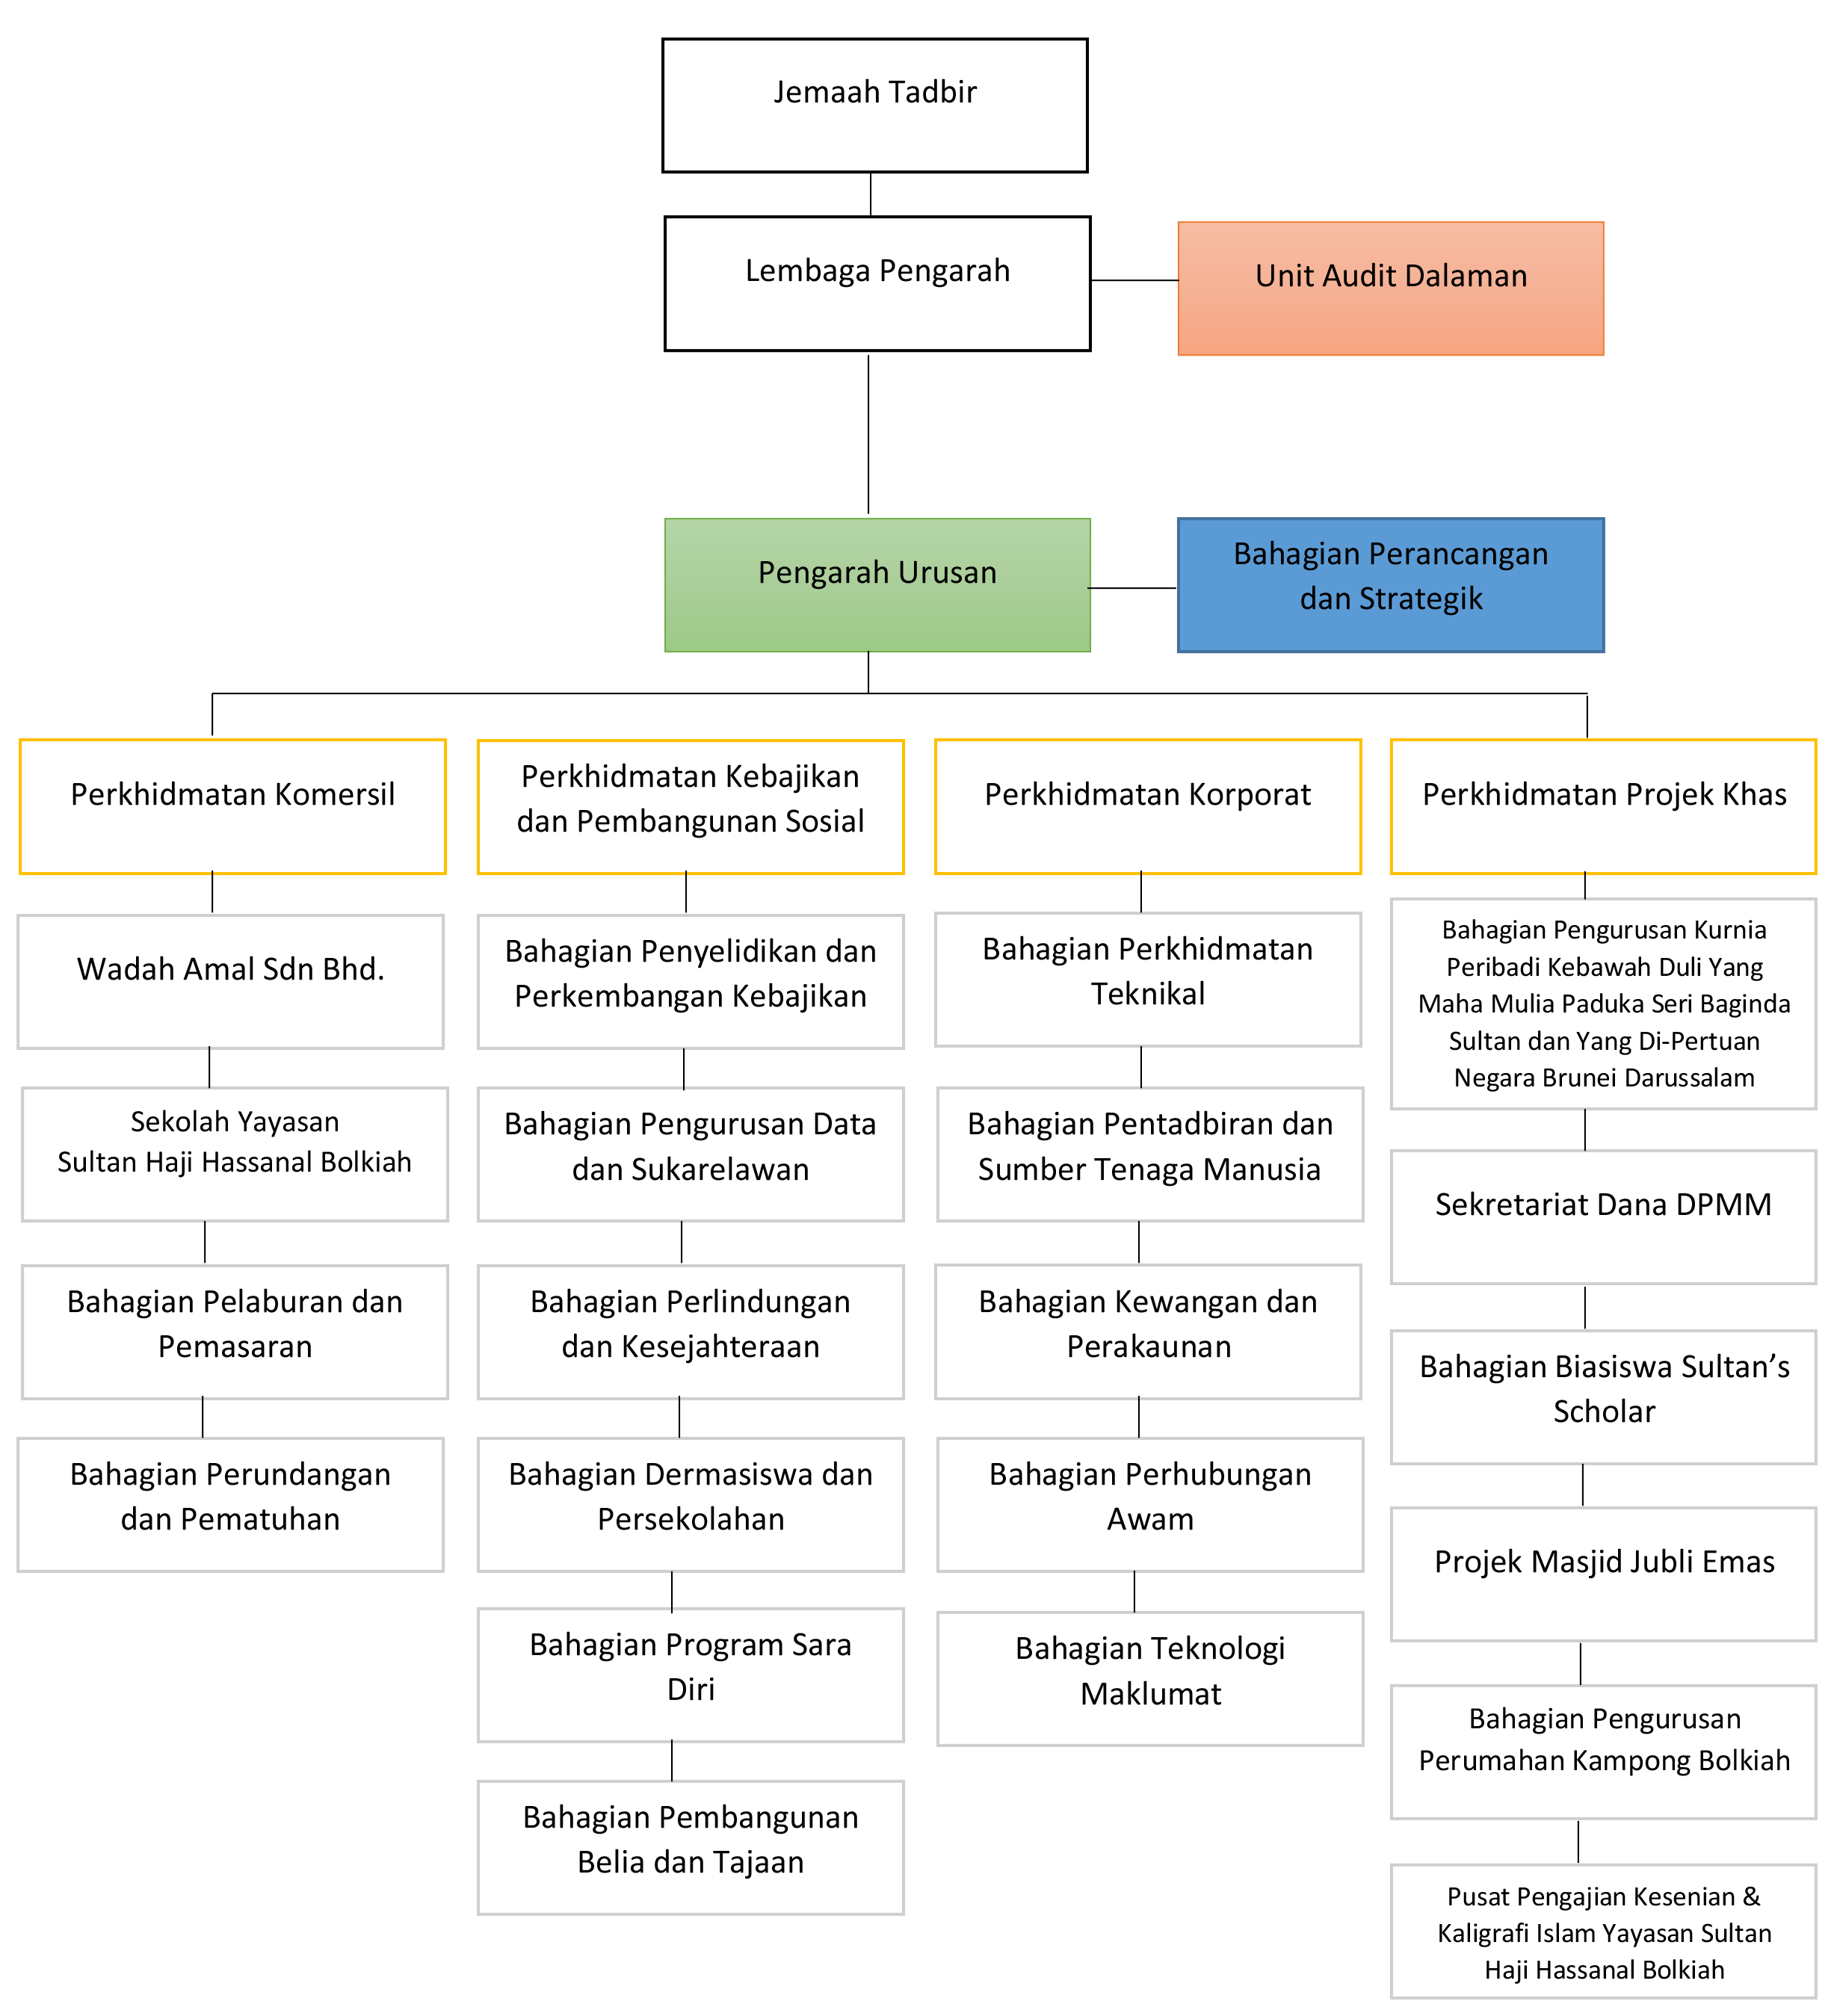 The Yayasan Management Organization Structure Chart